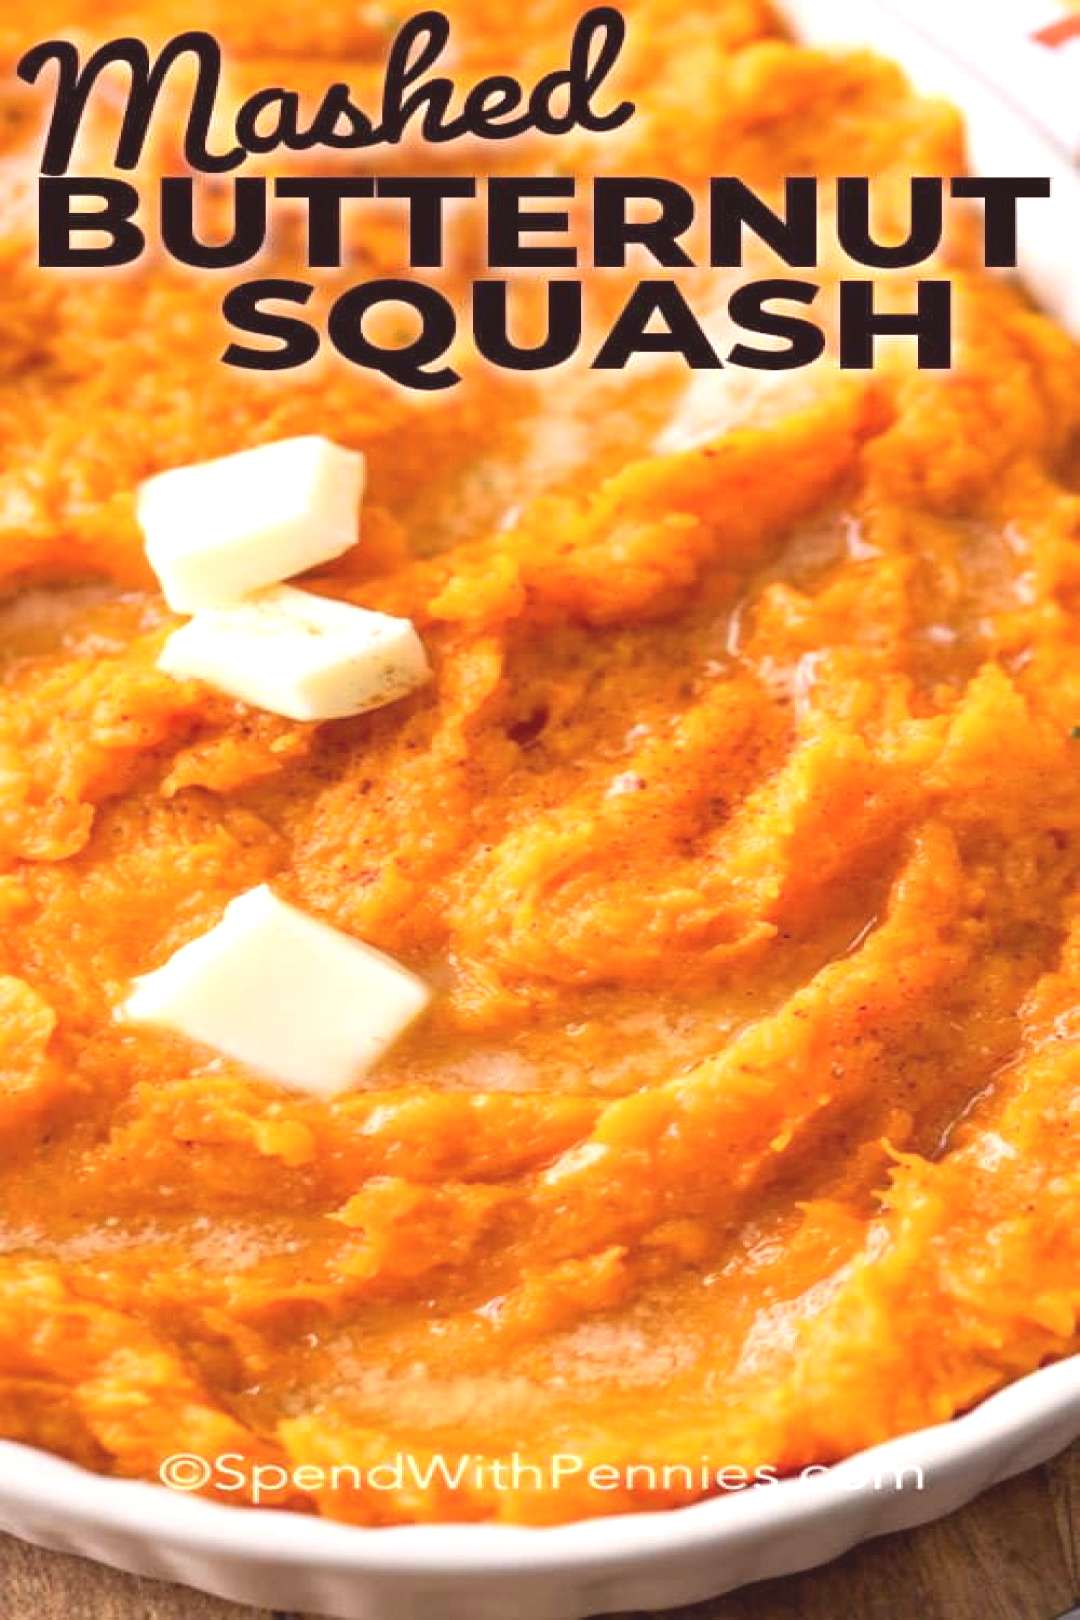 Mashed Butternut Squash - Spend With Pennies  -